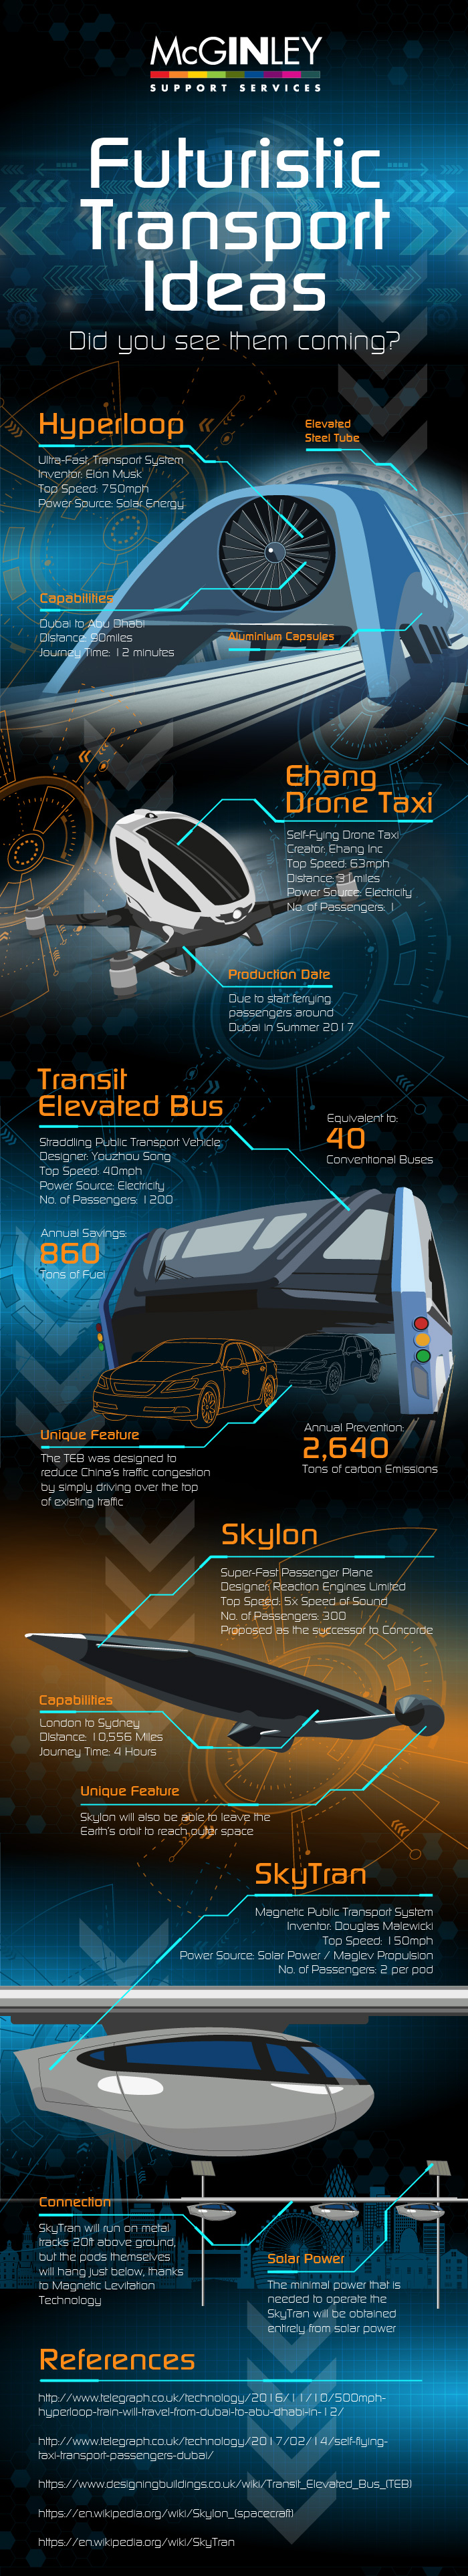 Futuristic Transport Ideas